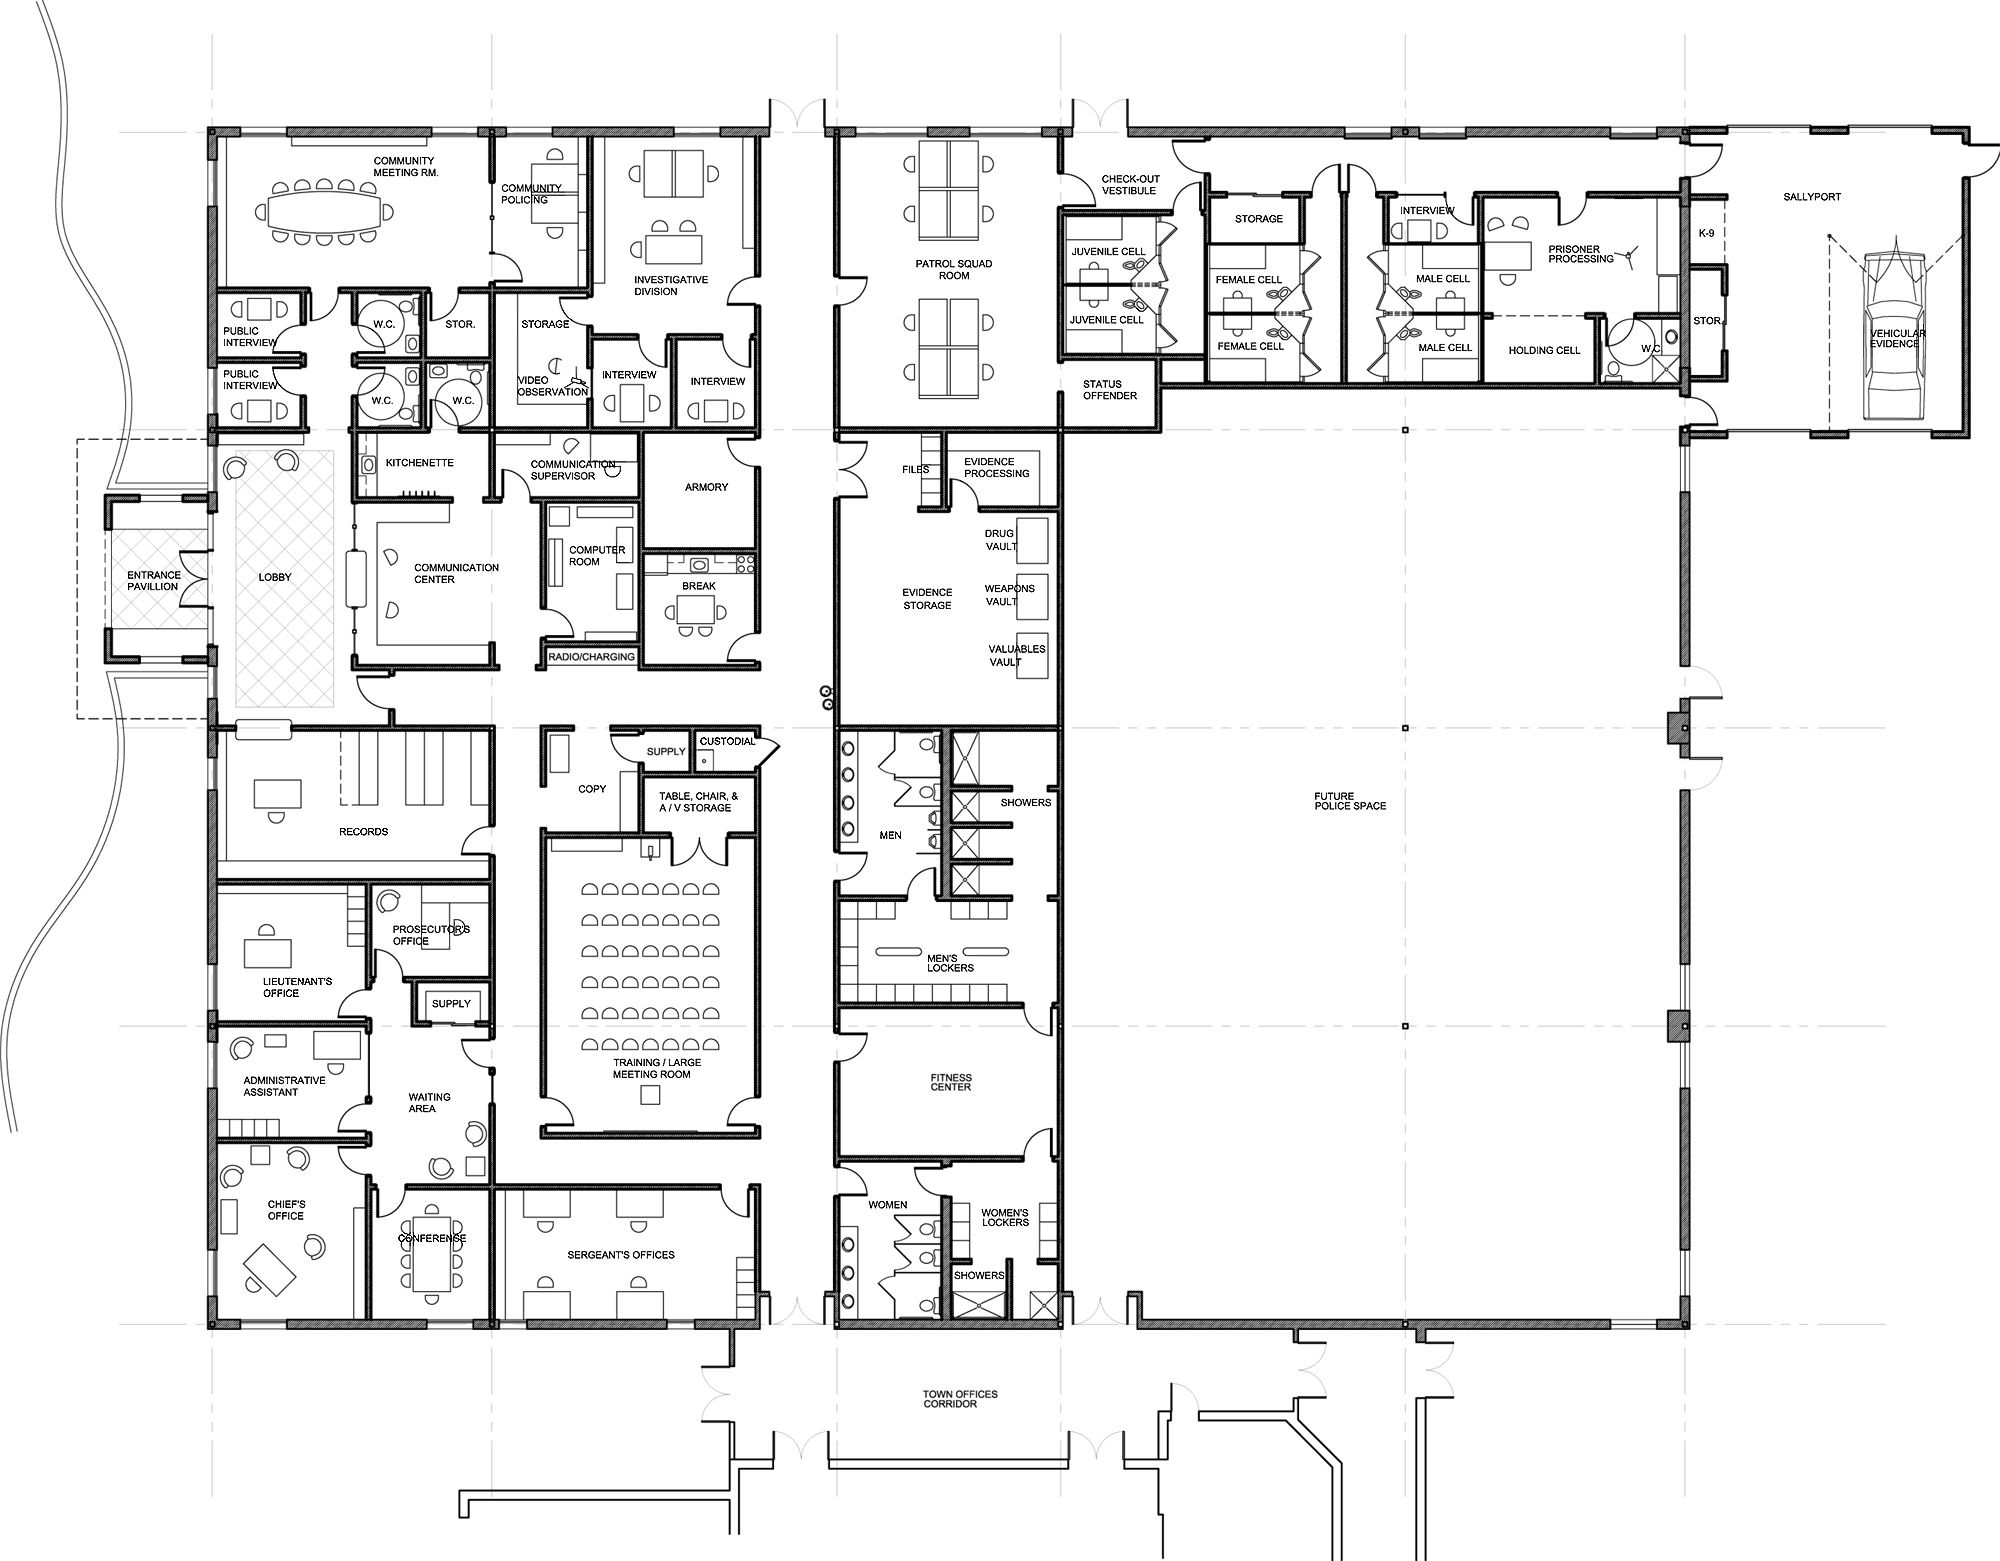 Astonishing Floor Plans Blueprints On Floor With Home